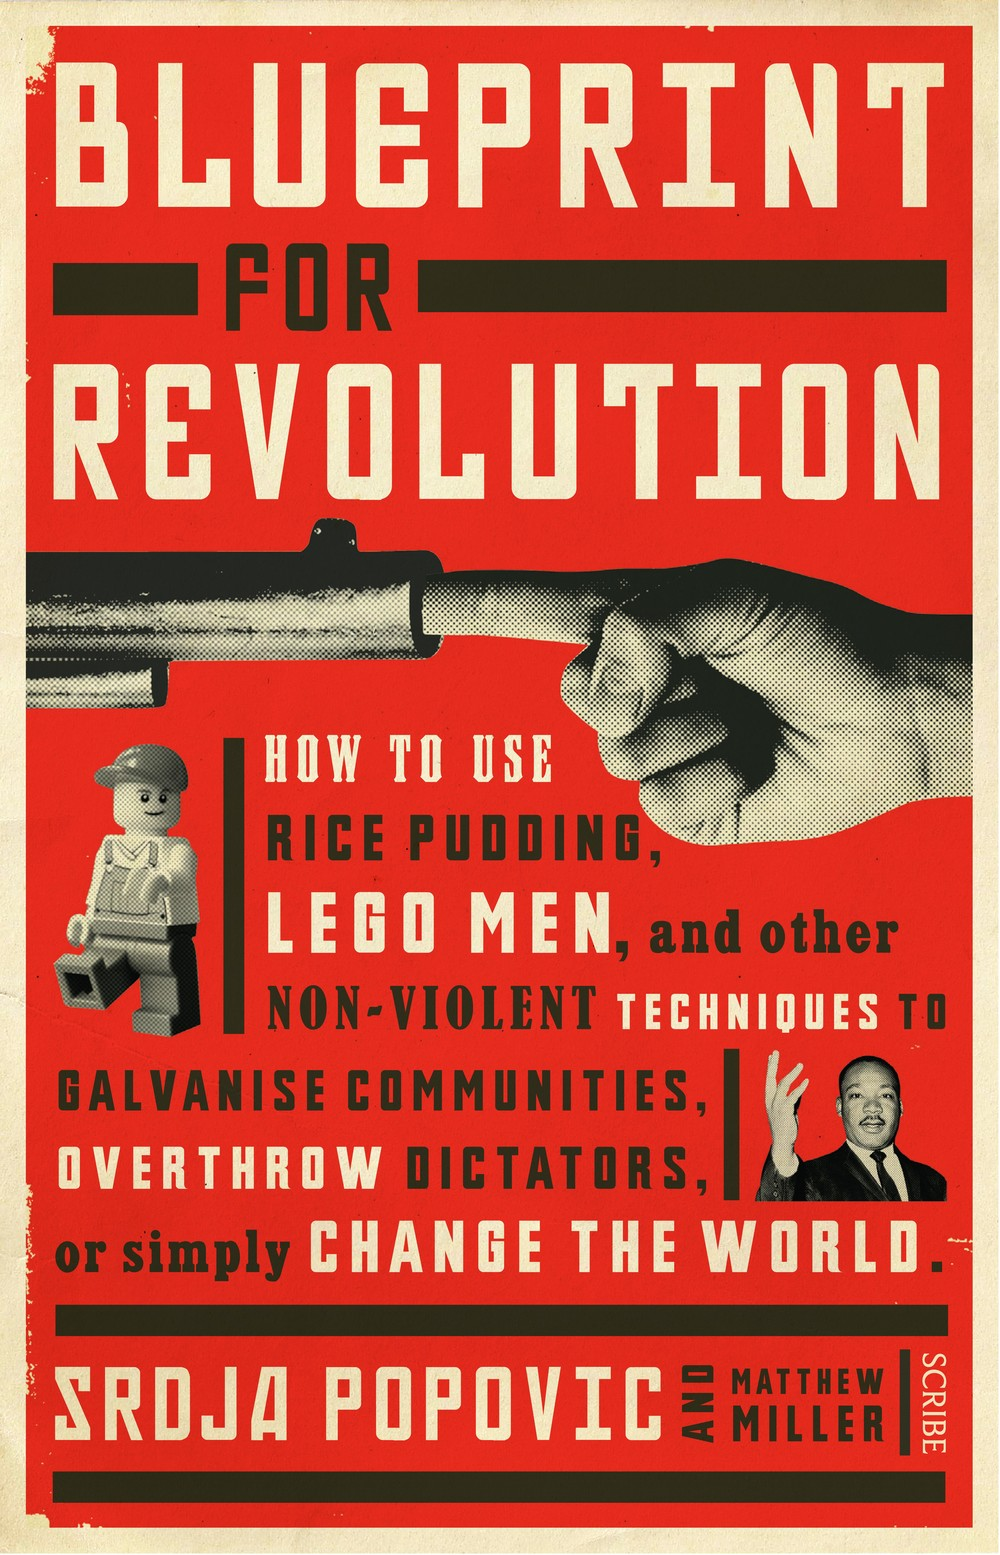 Blueprint for Revolution: Srdja Popovic Image: Amazon UK